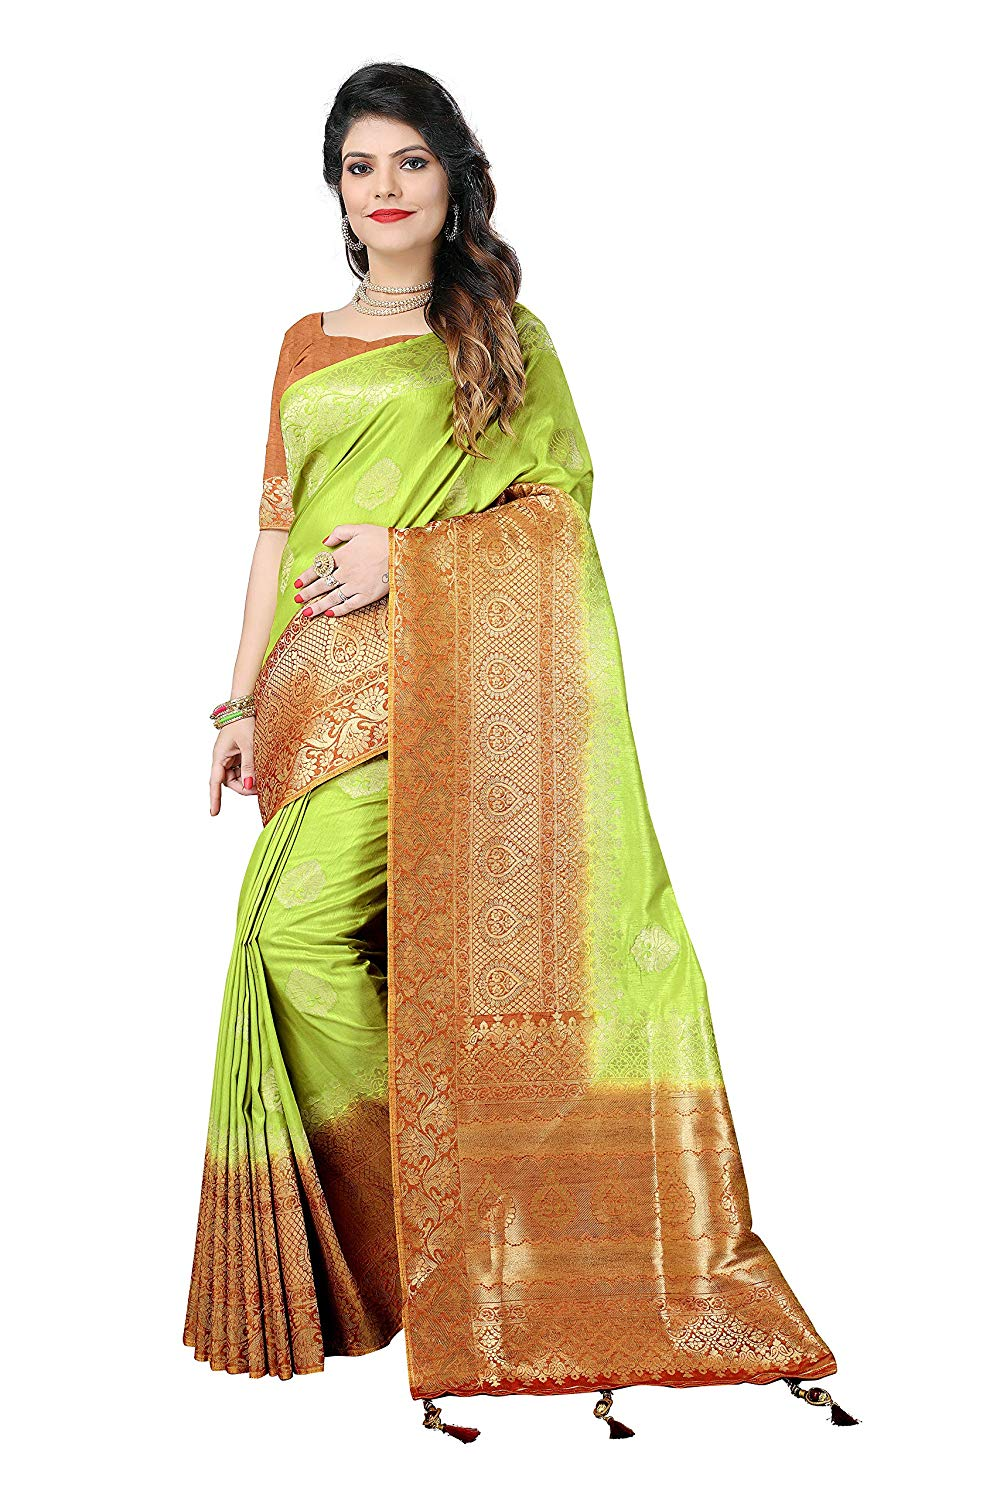 Silky Sarees Women's Banarasi Silk Saree with Heavy Blouse Piece